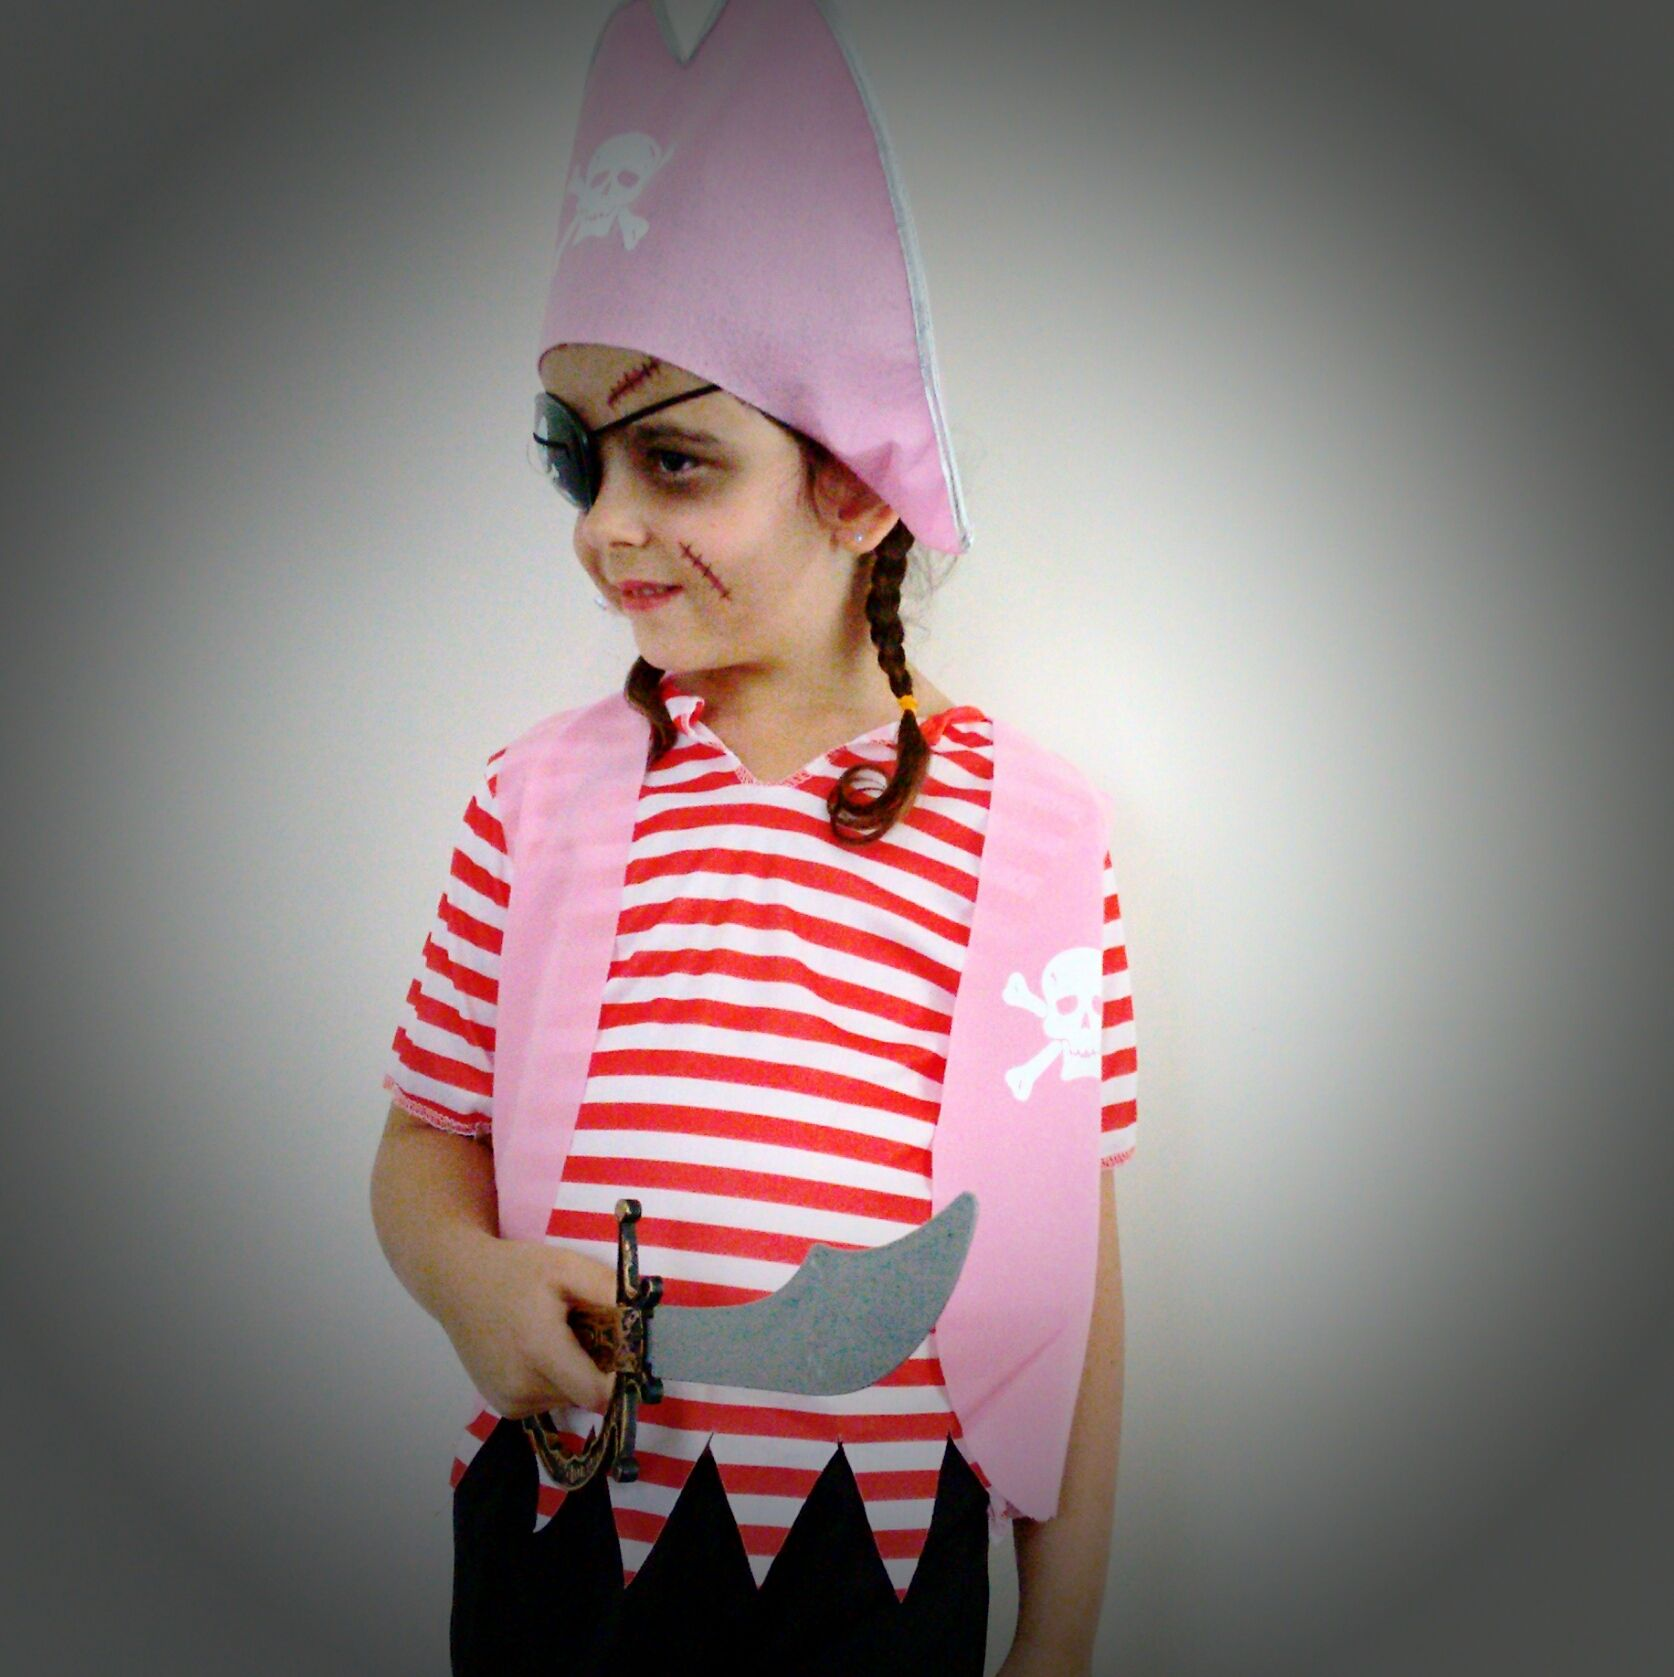 Tis'nt just boys who are wanten to be sailin the seven seas,girls can be tough as nails and will have you walkin the plank in no time at all. On the hunt for treasure are we? Girls Pirate dress Ups www.thedressupbox.net.au